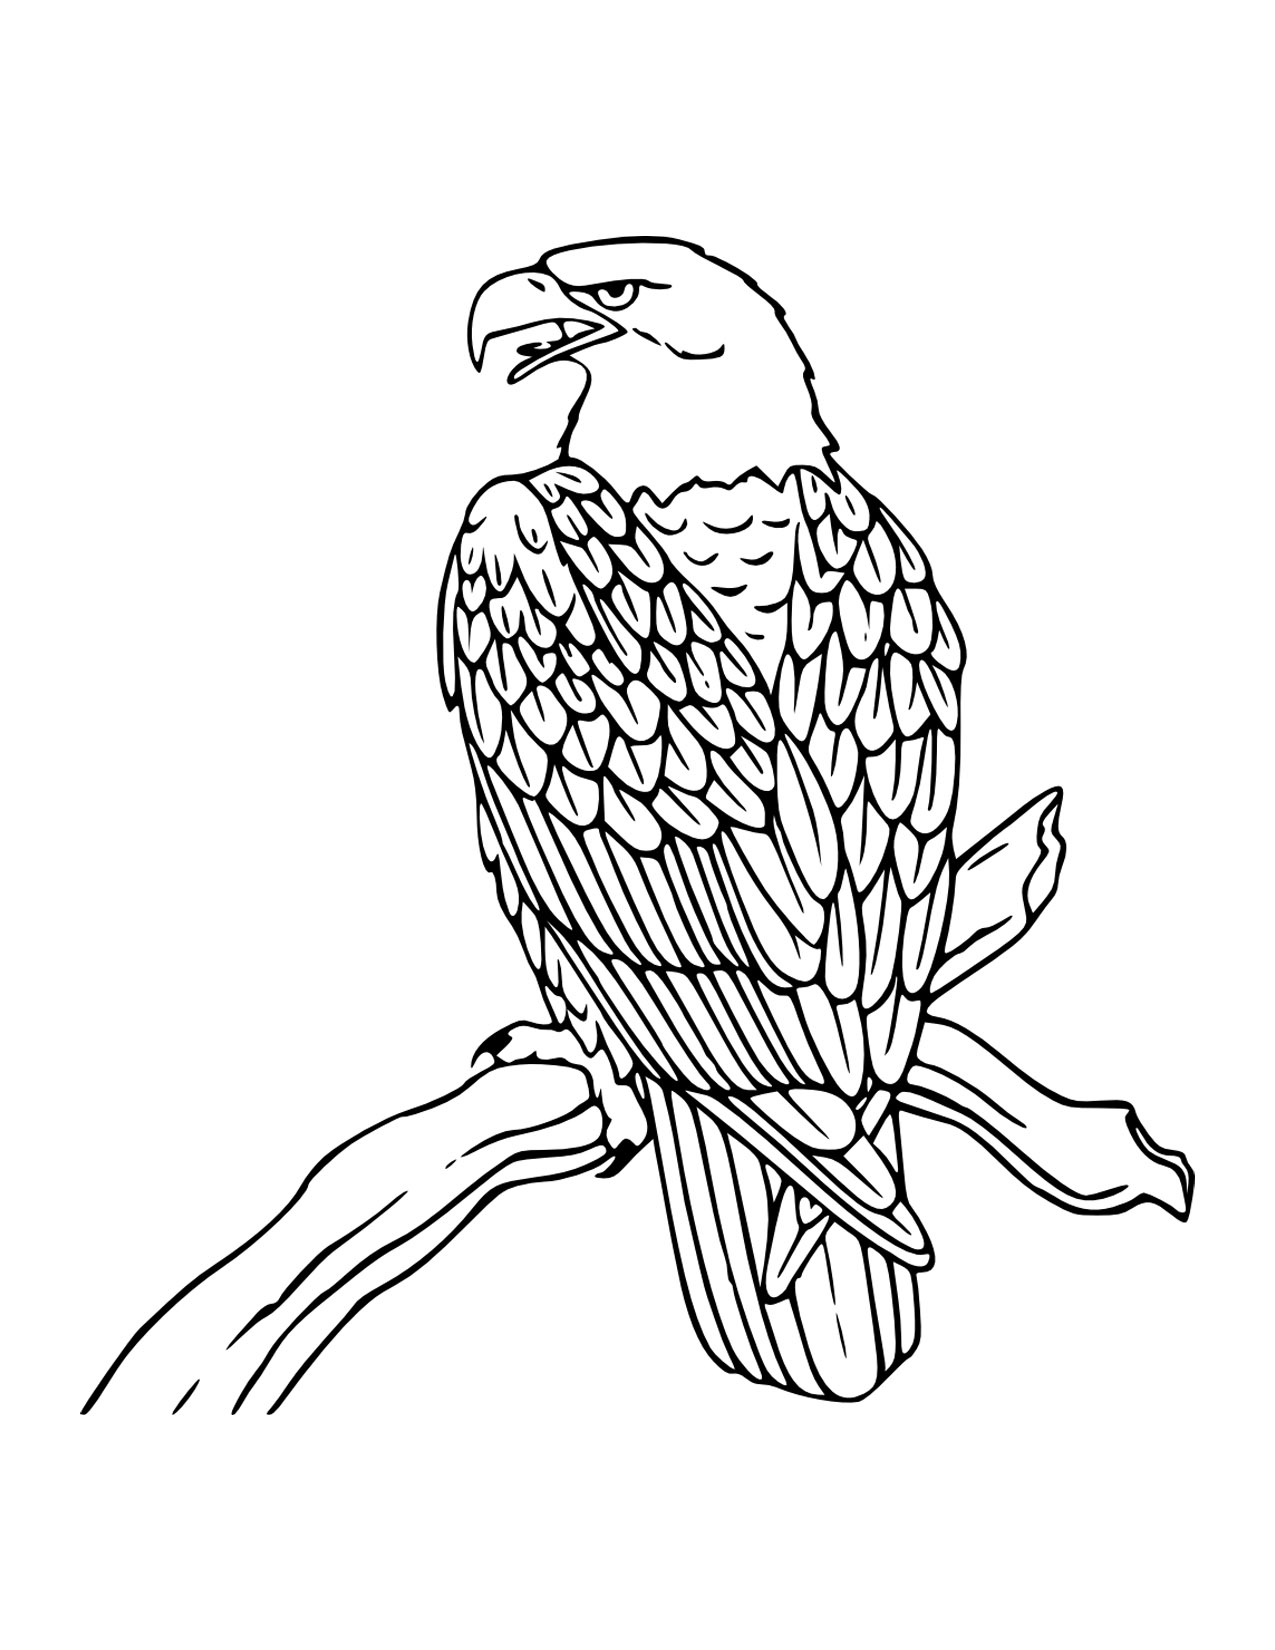 coloring pages eagle free eagle coloring pages eagle coloring pages